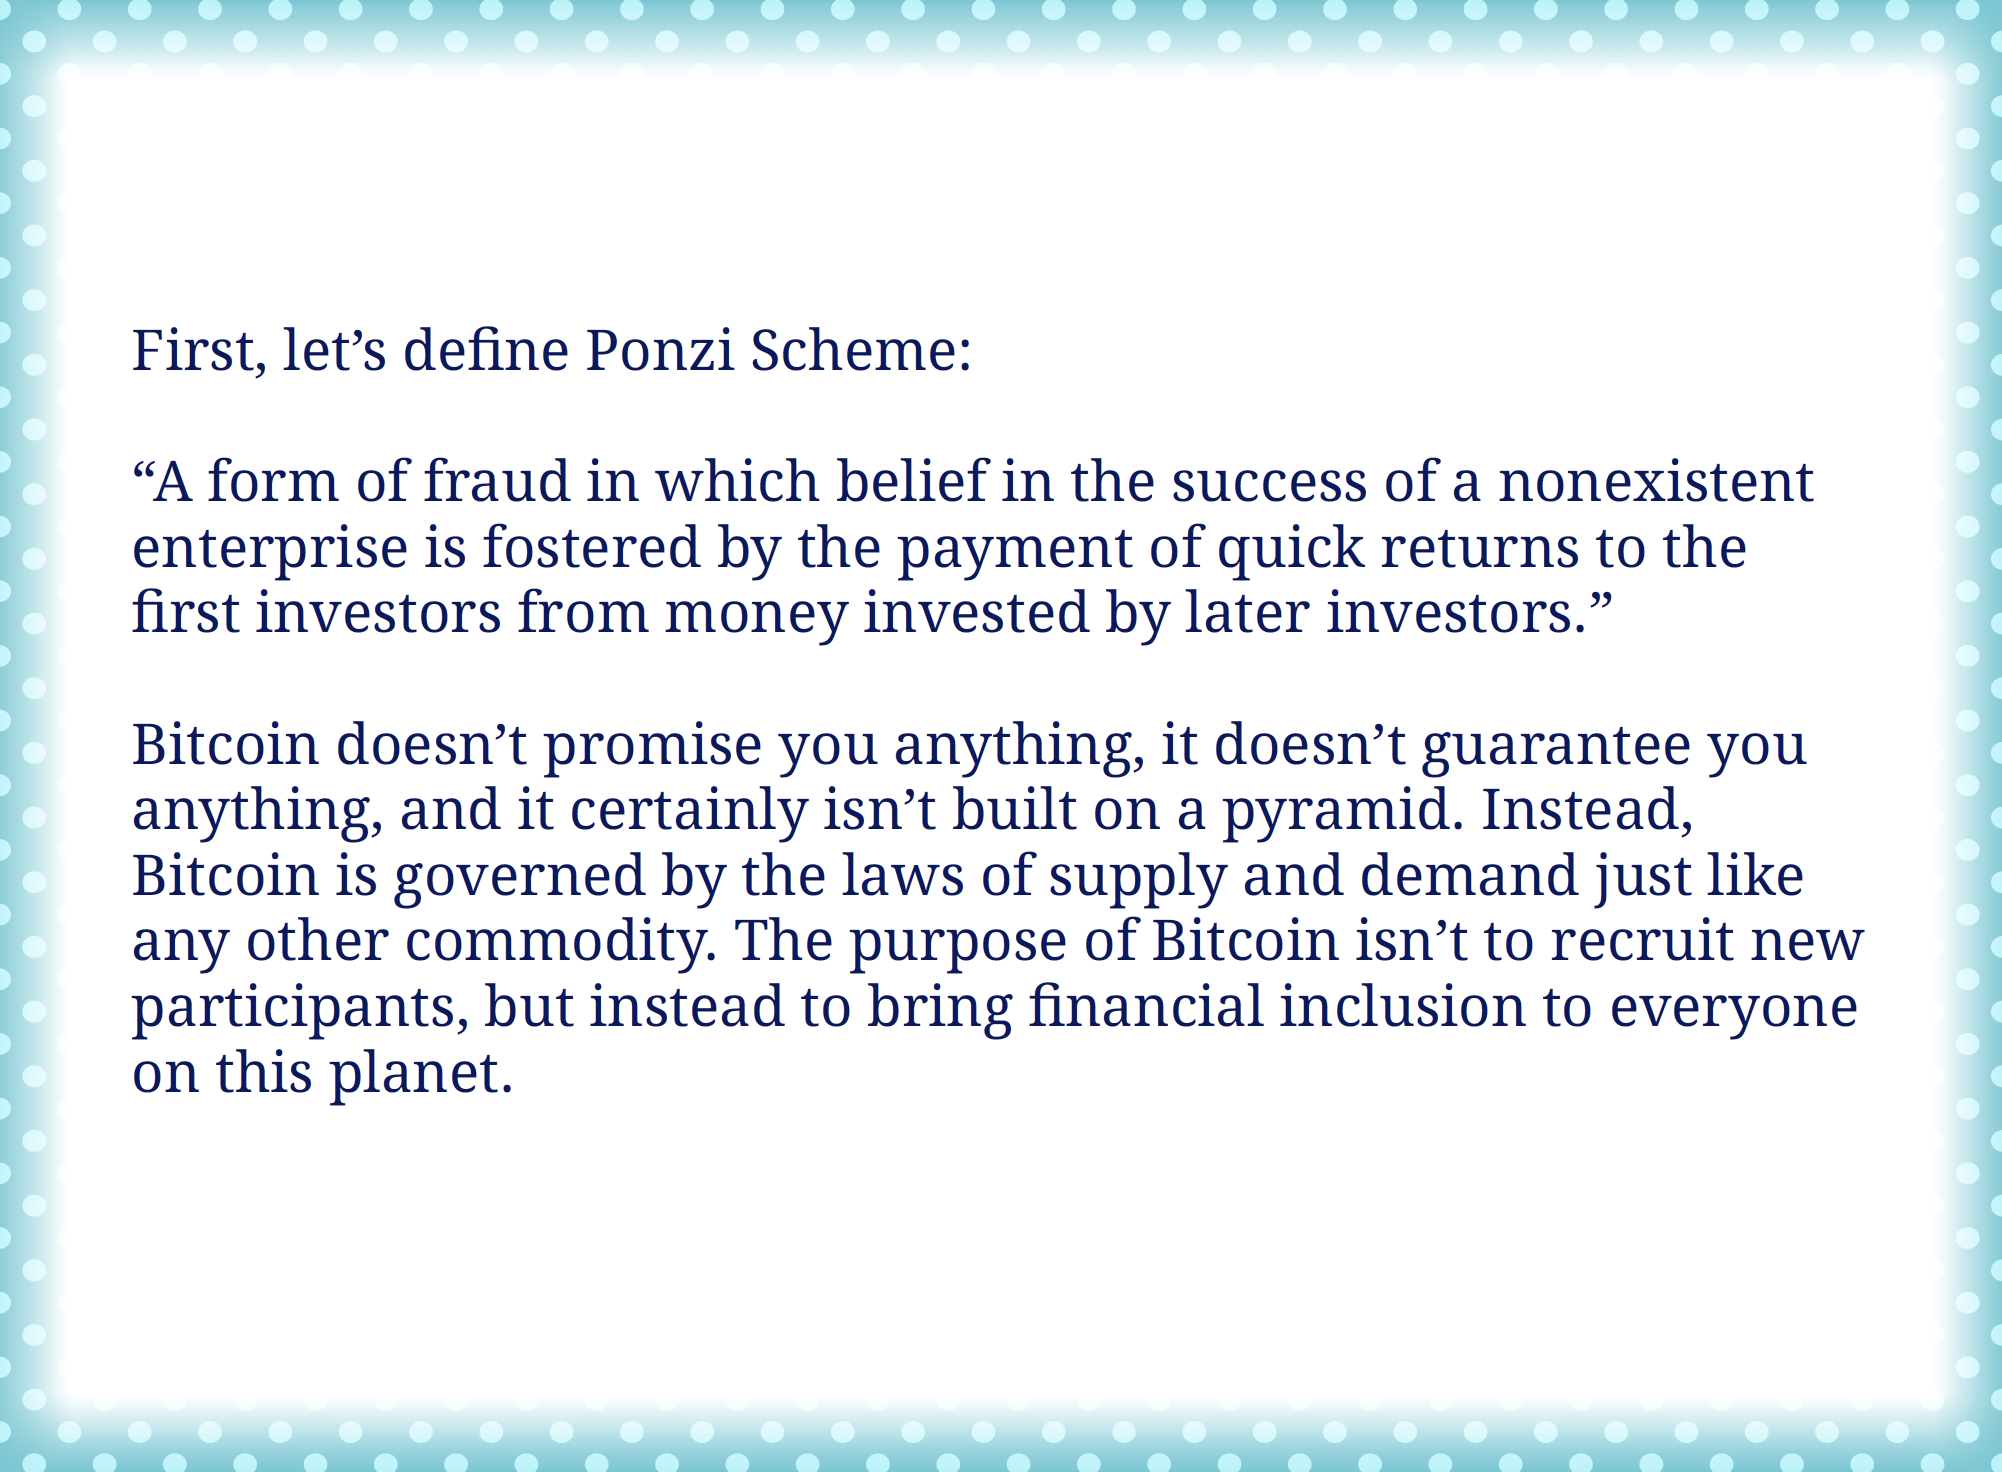 Bitcoin is a ponzi scheme: Start2Bitcoin